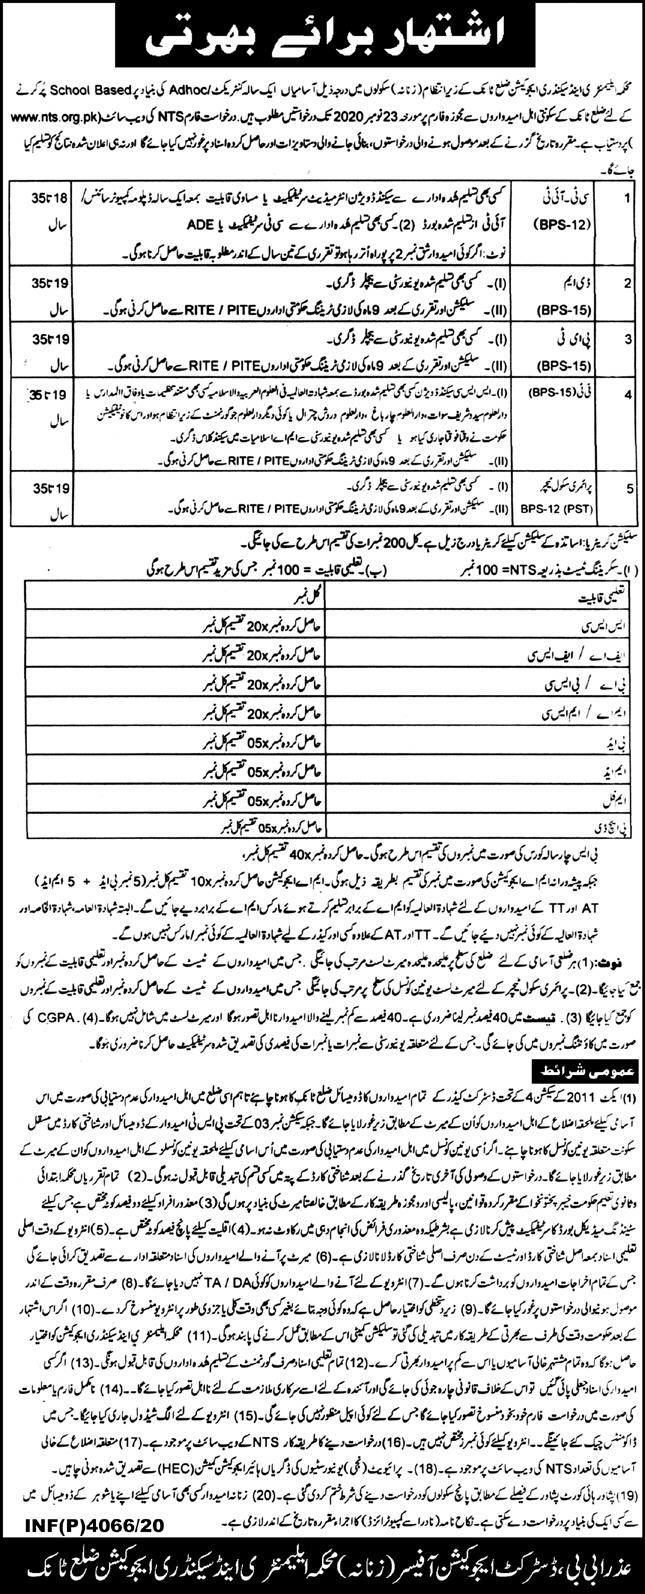 Elementary And Secondary Education Department Tank Teaching Latest Jobs 2020